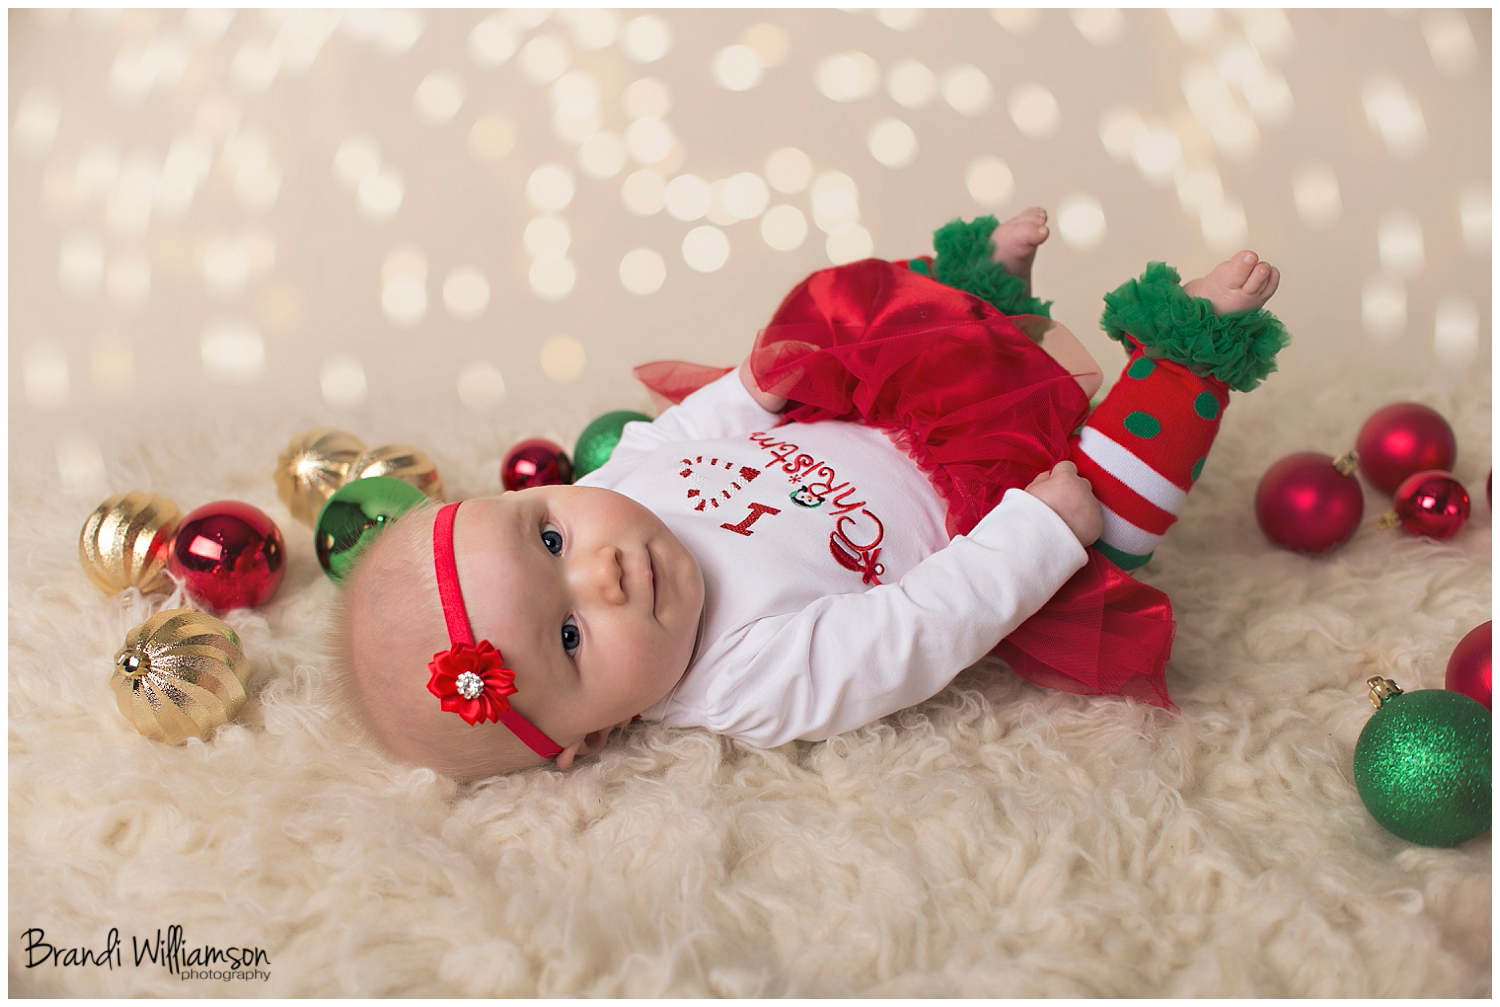 new philadelphia ohio newborn photographer brandi williamson photography 6 month old - What To Get A 6 Month Old For Christmas